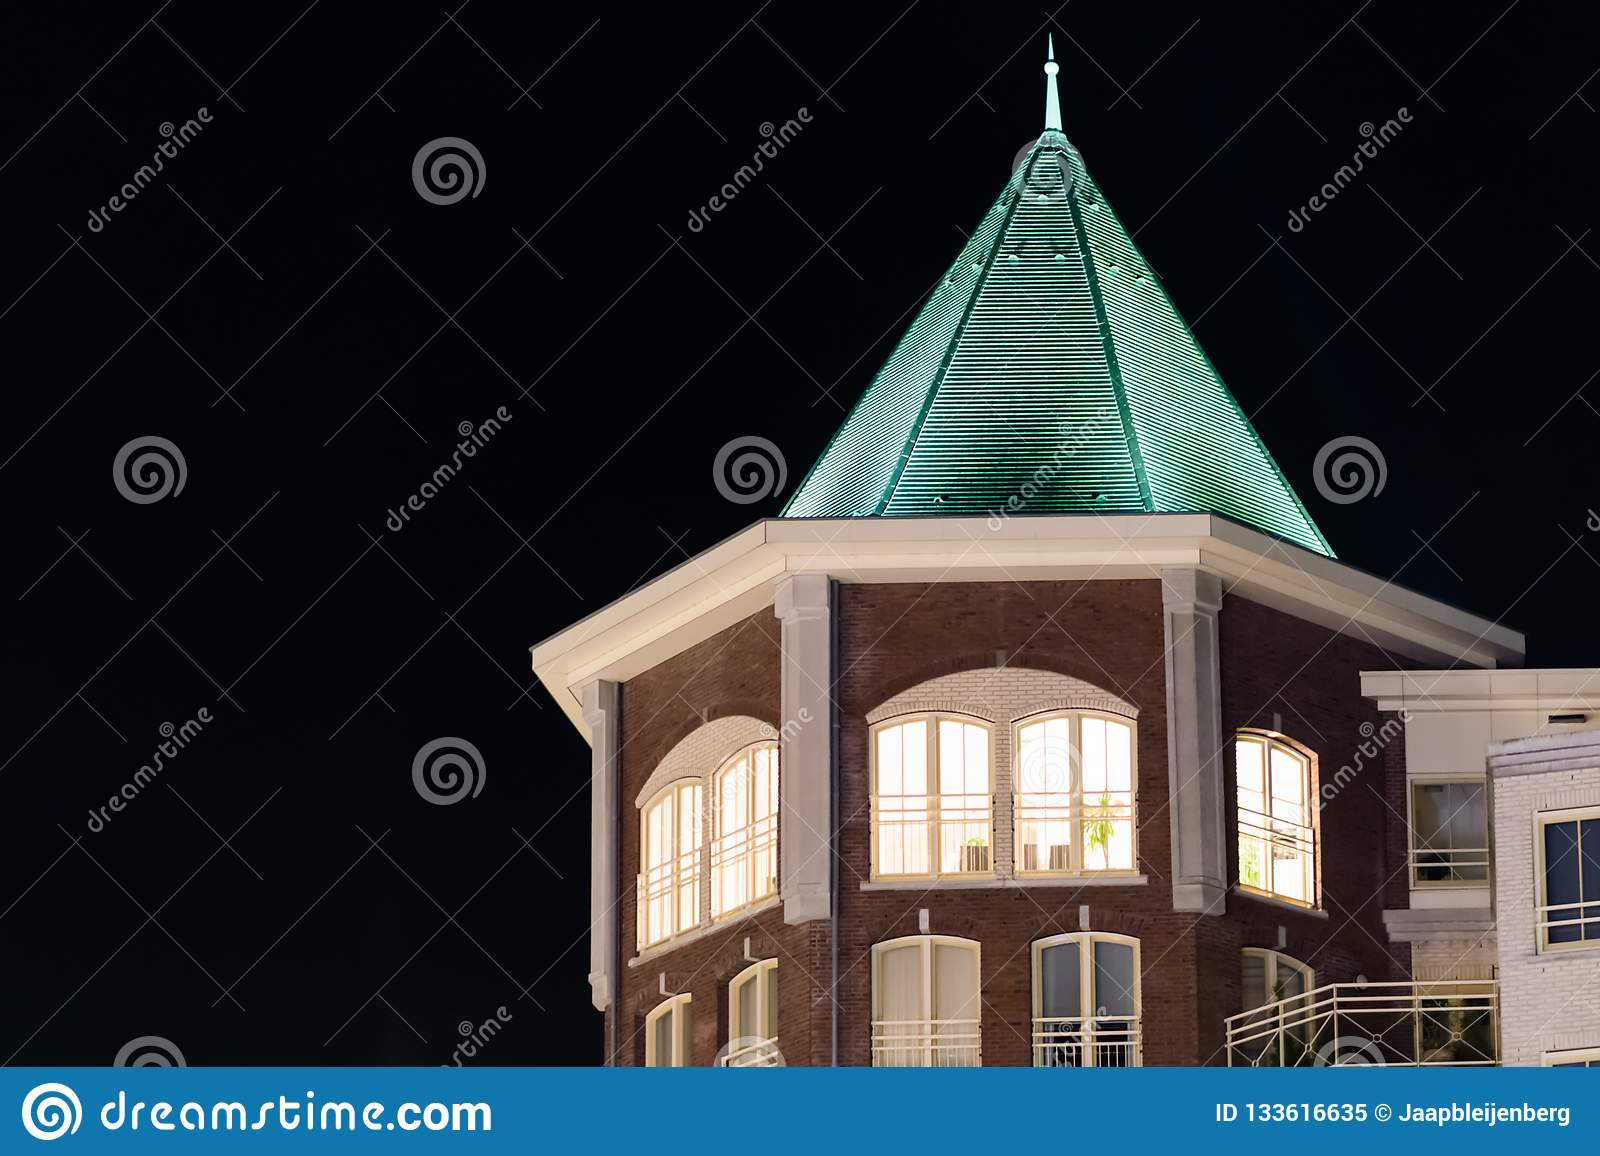 Beautiful city tower building with lighted apartment windows and a pointy rooftop, modern dutch architecture at night